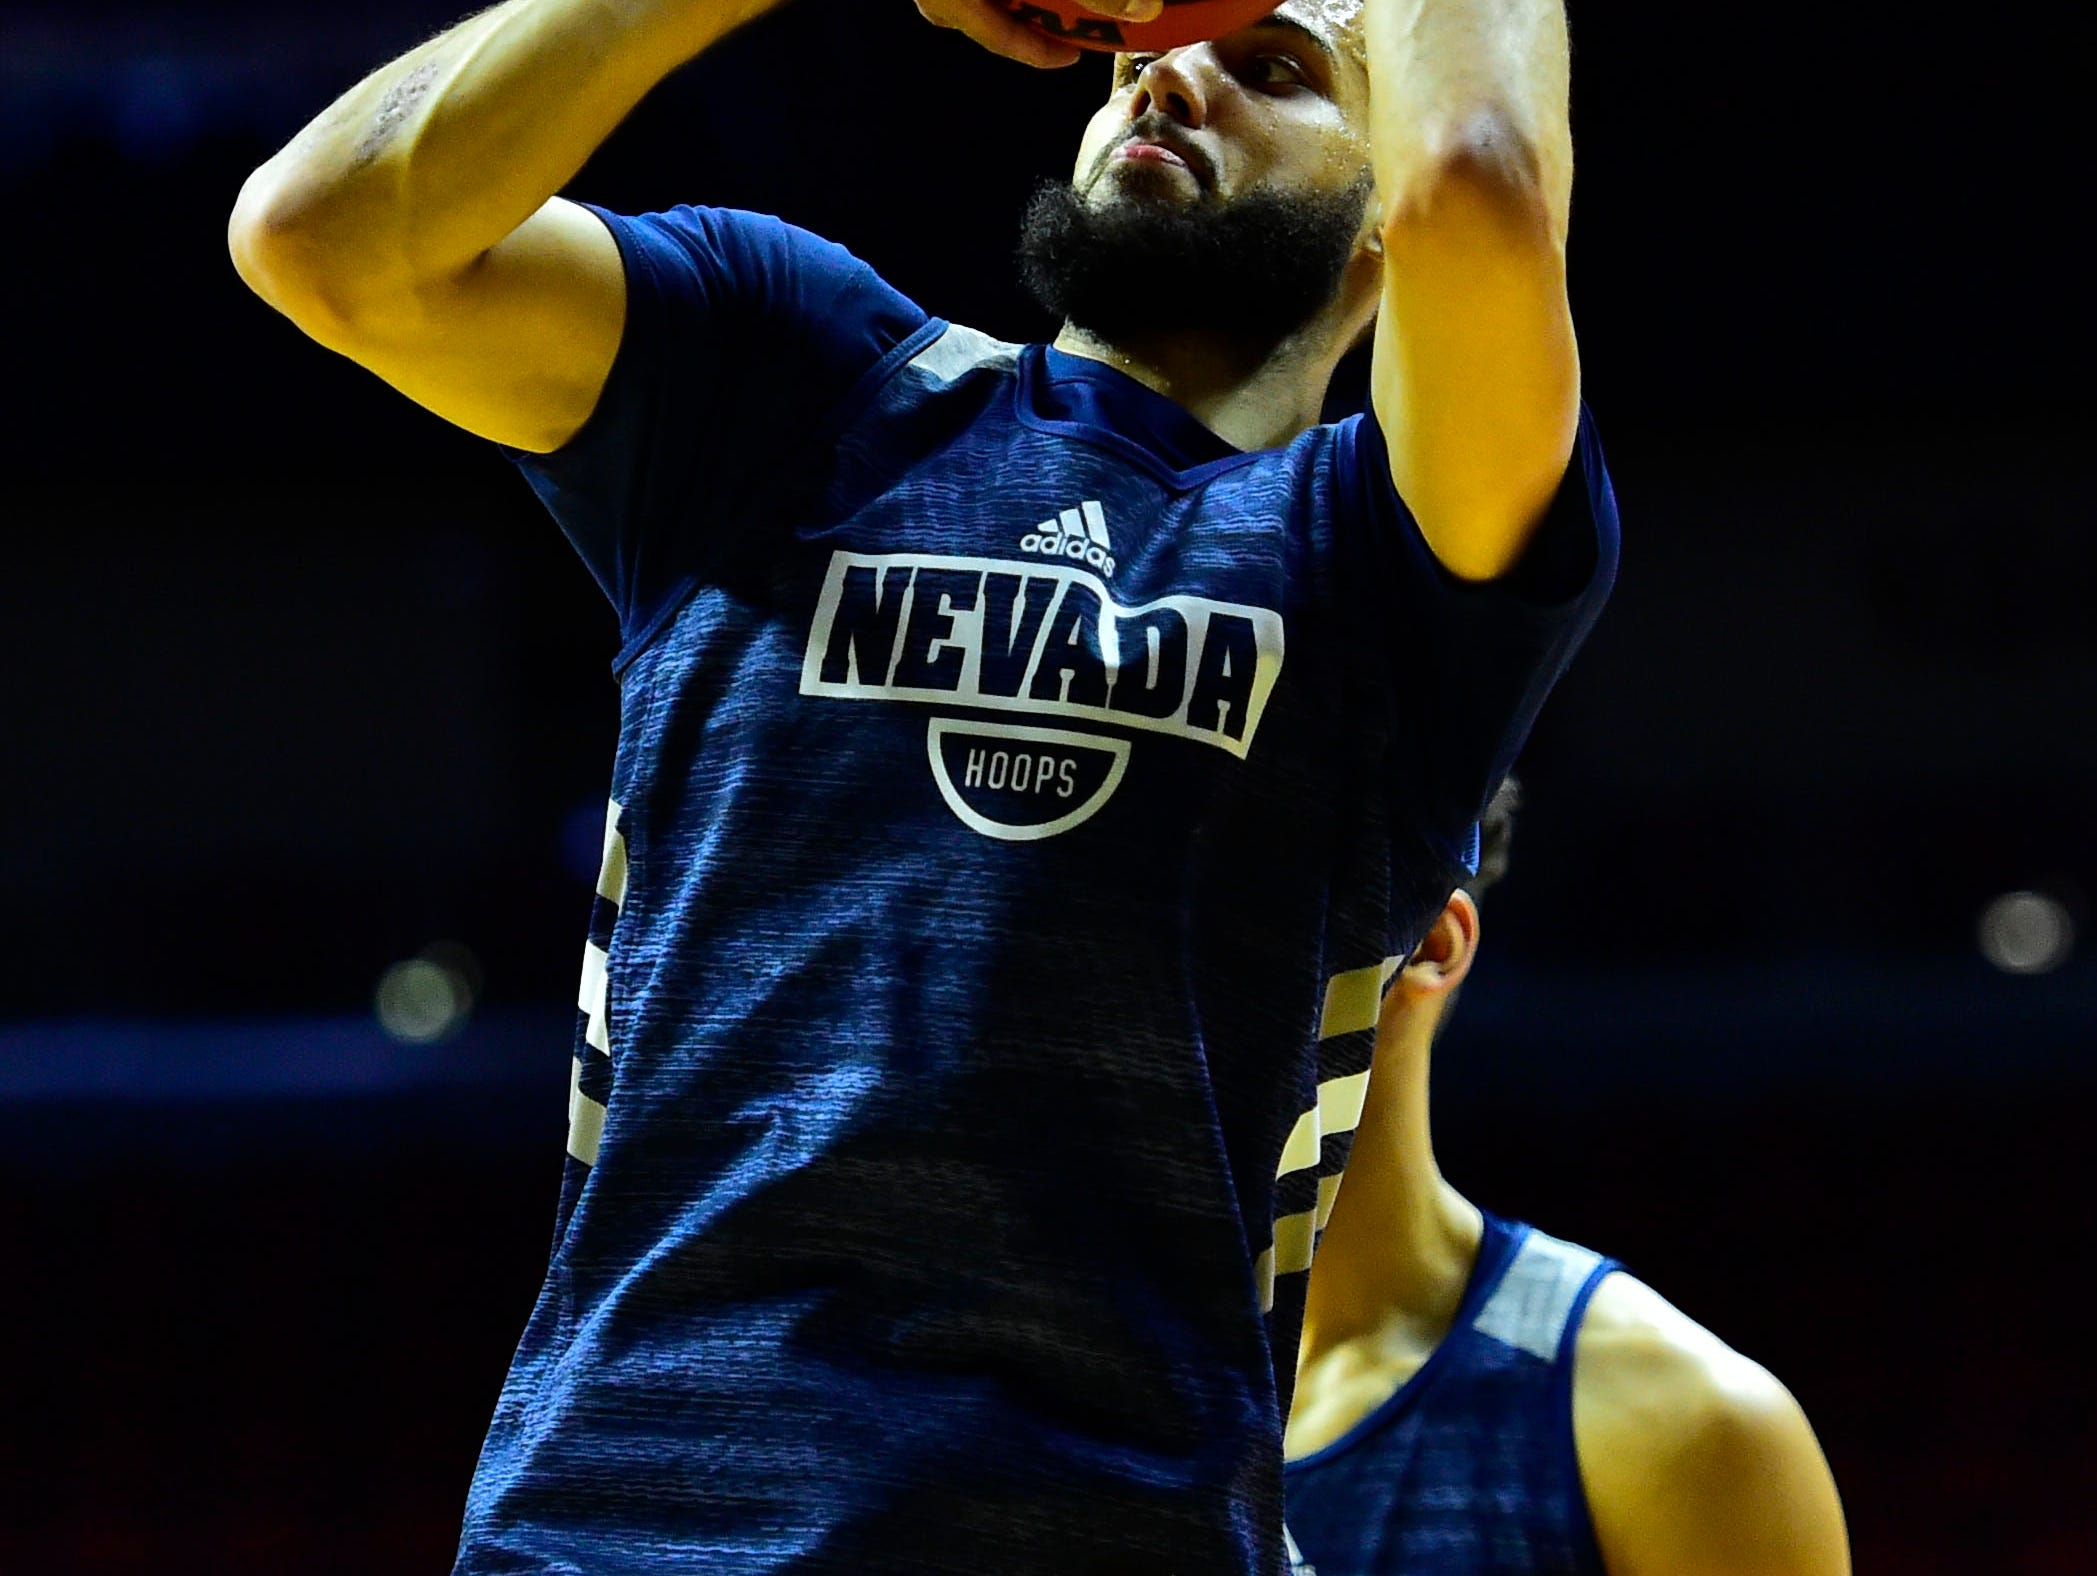 Mar 20, 2019; Des Moines, IA, USA; Nevada Wolf Pack forward Caleb Martin (10) shoots the ball during practice before the first round of the 2019 NCAA Tournament at Wells Fargo Arena. Mandatory Credit: Jeffrey Becker-USA TODAY Sports